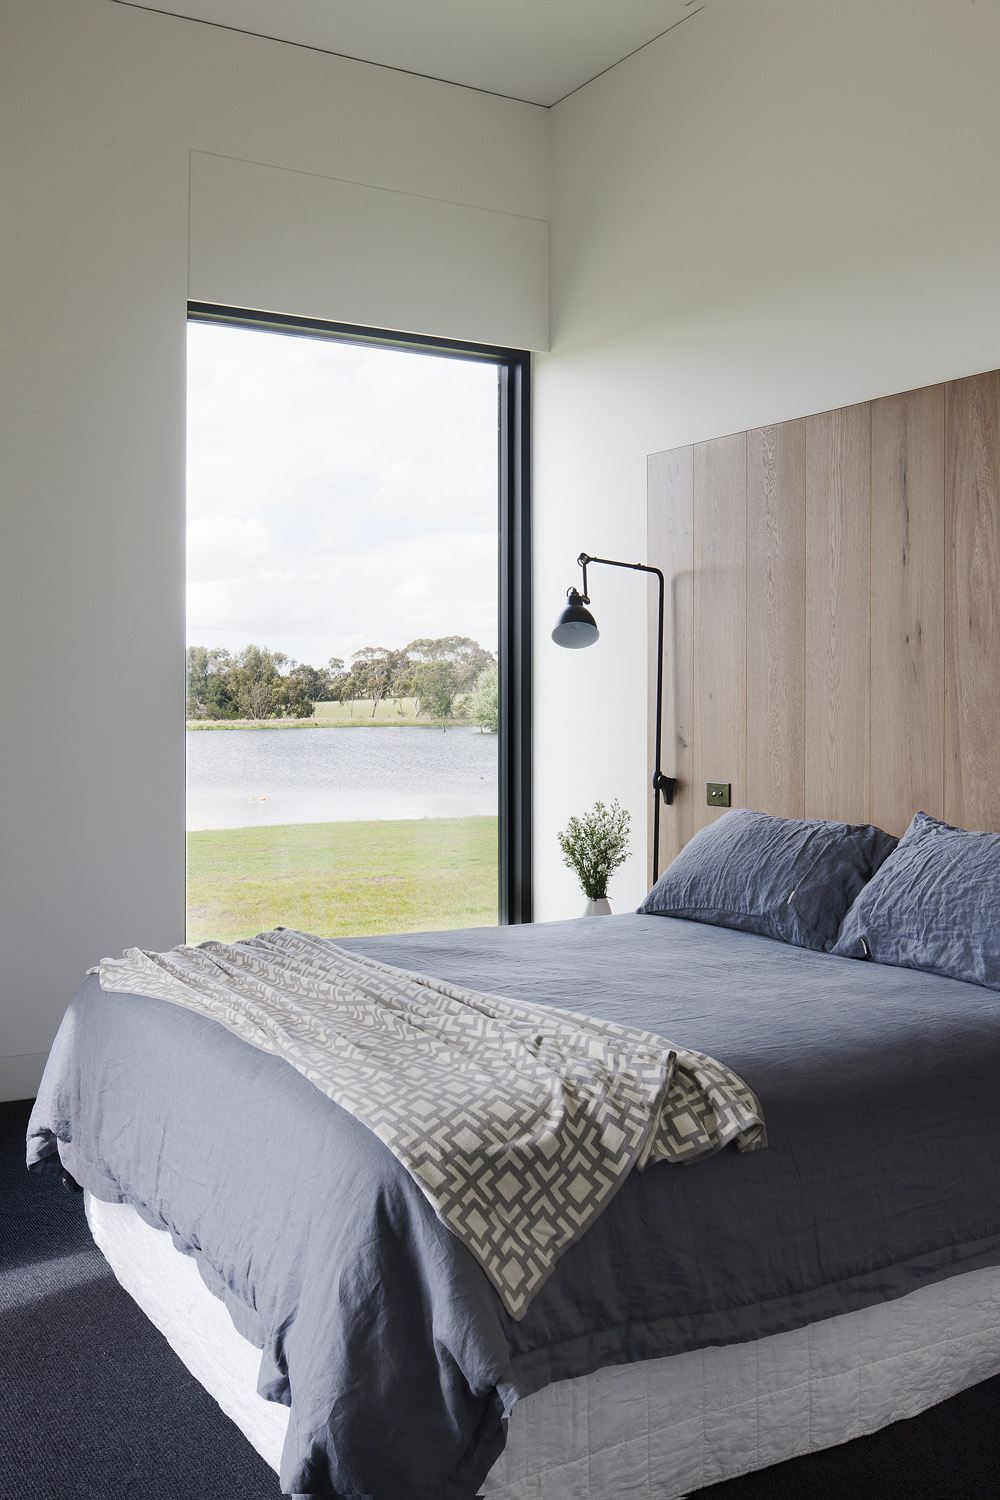 Linen is an eco-luxe must-have in the bedroom